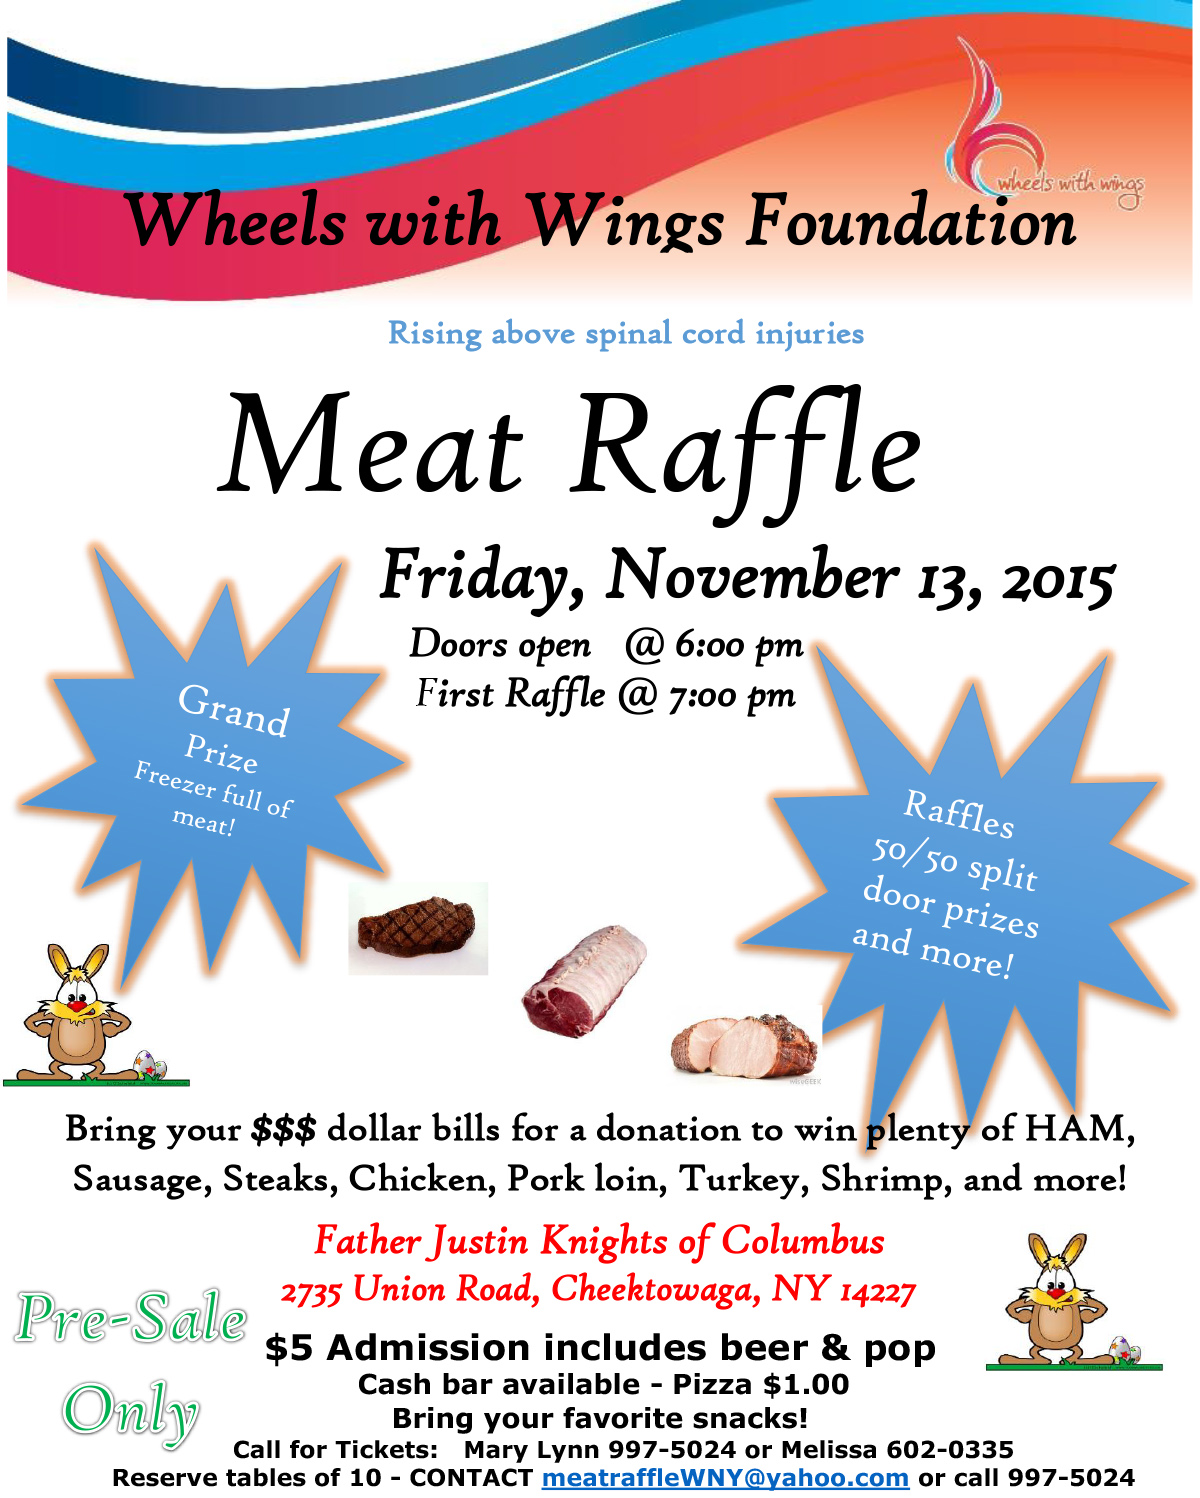 Meat raffle flyer - 11-13-15.jpg